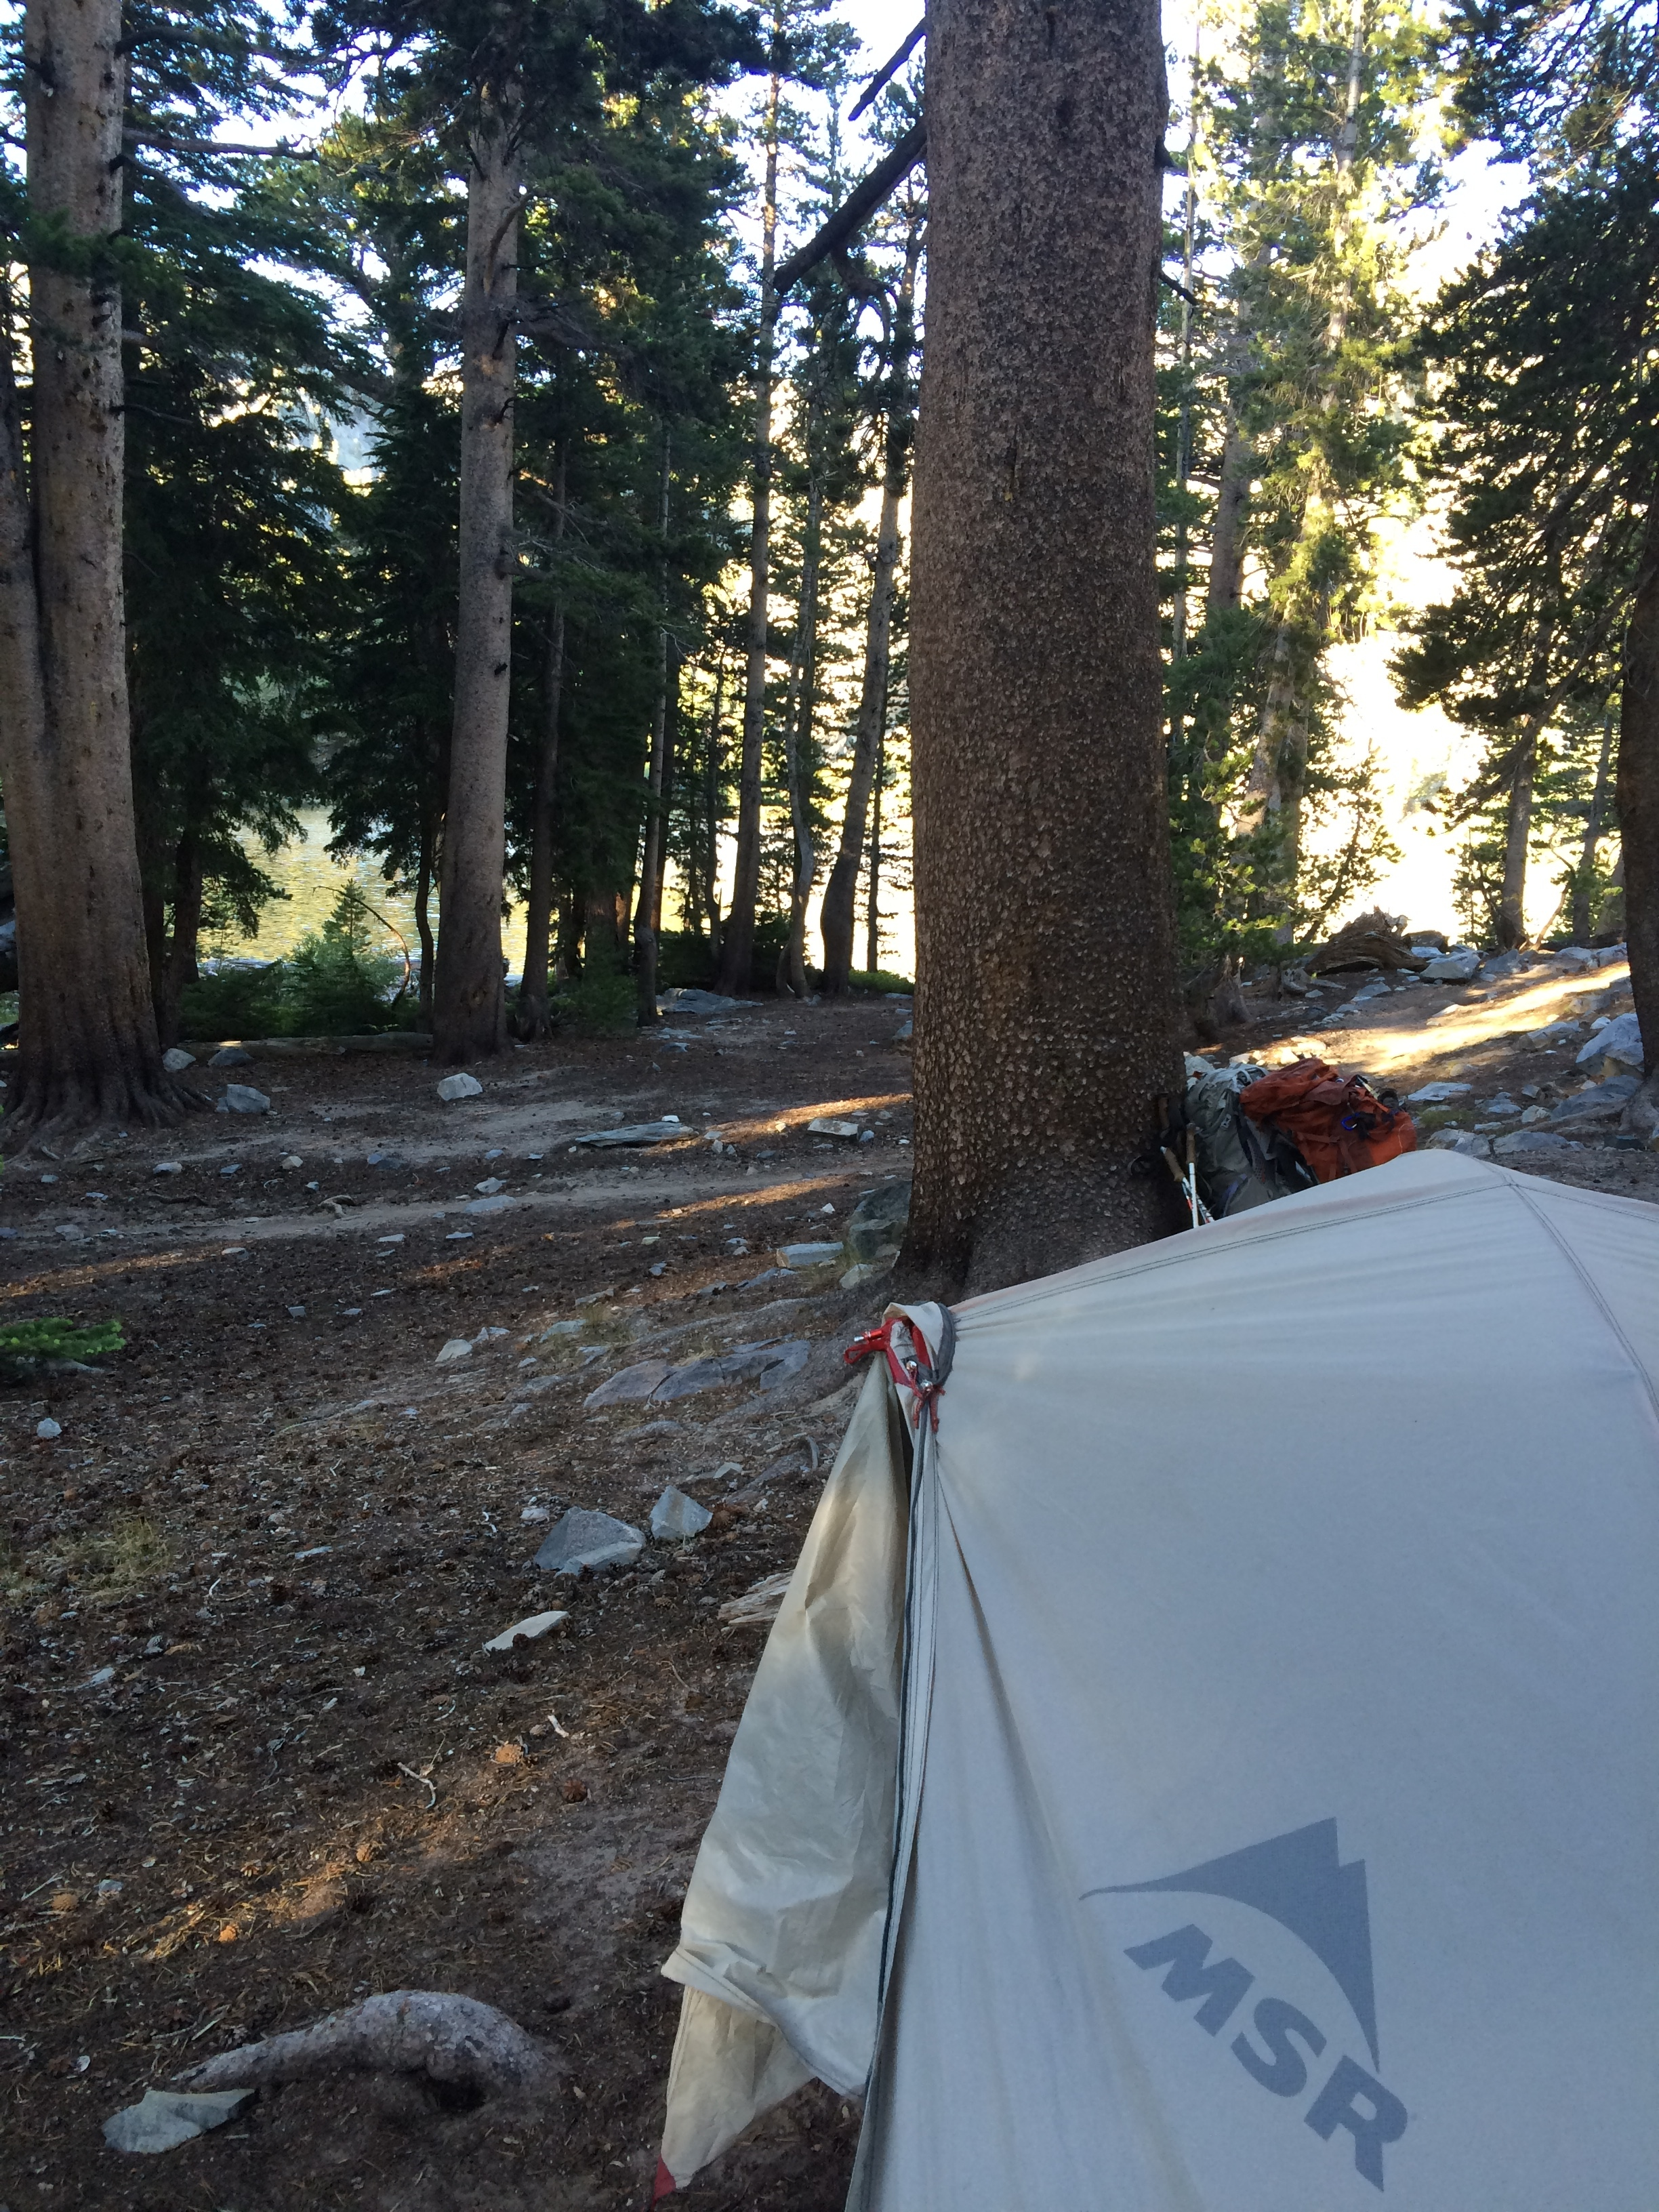 Day 3: Camping north of the trail near Rosalie Lake.